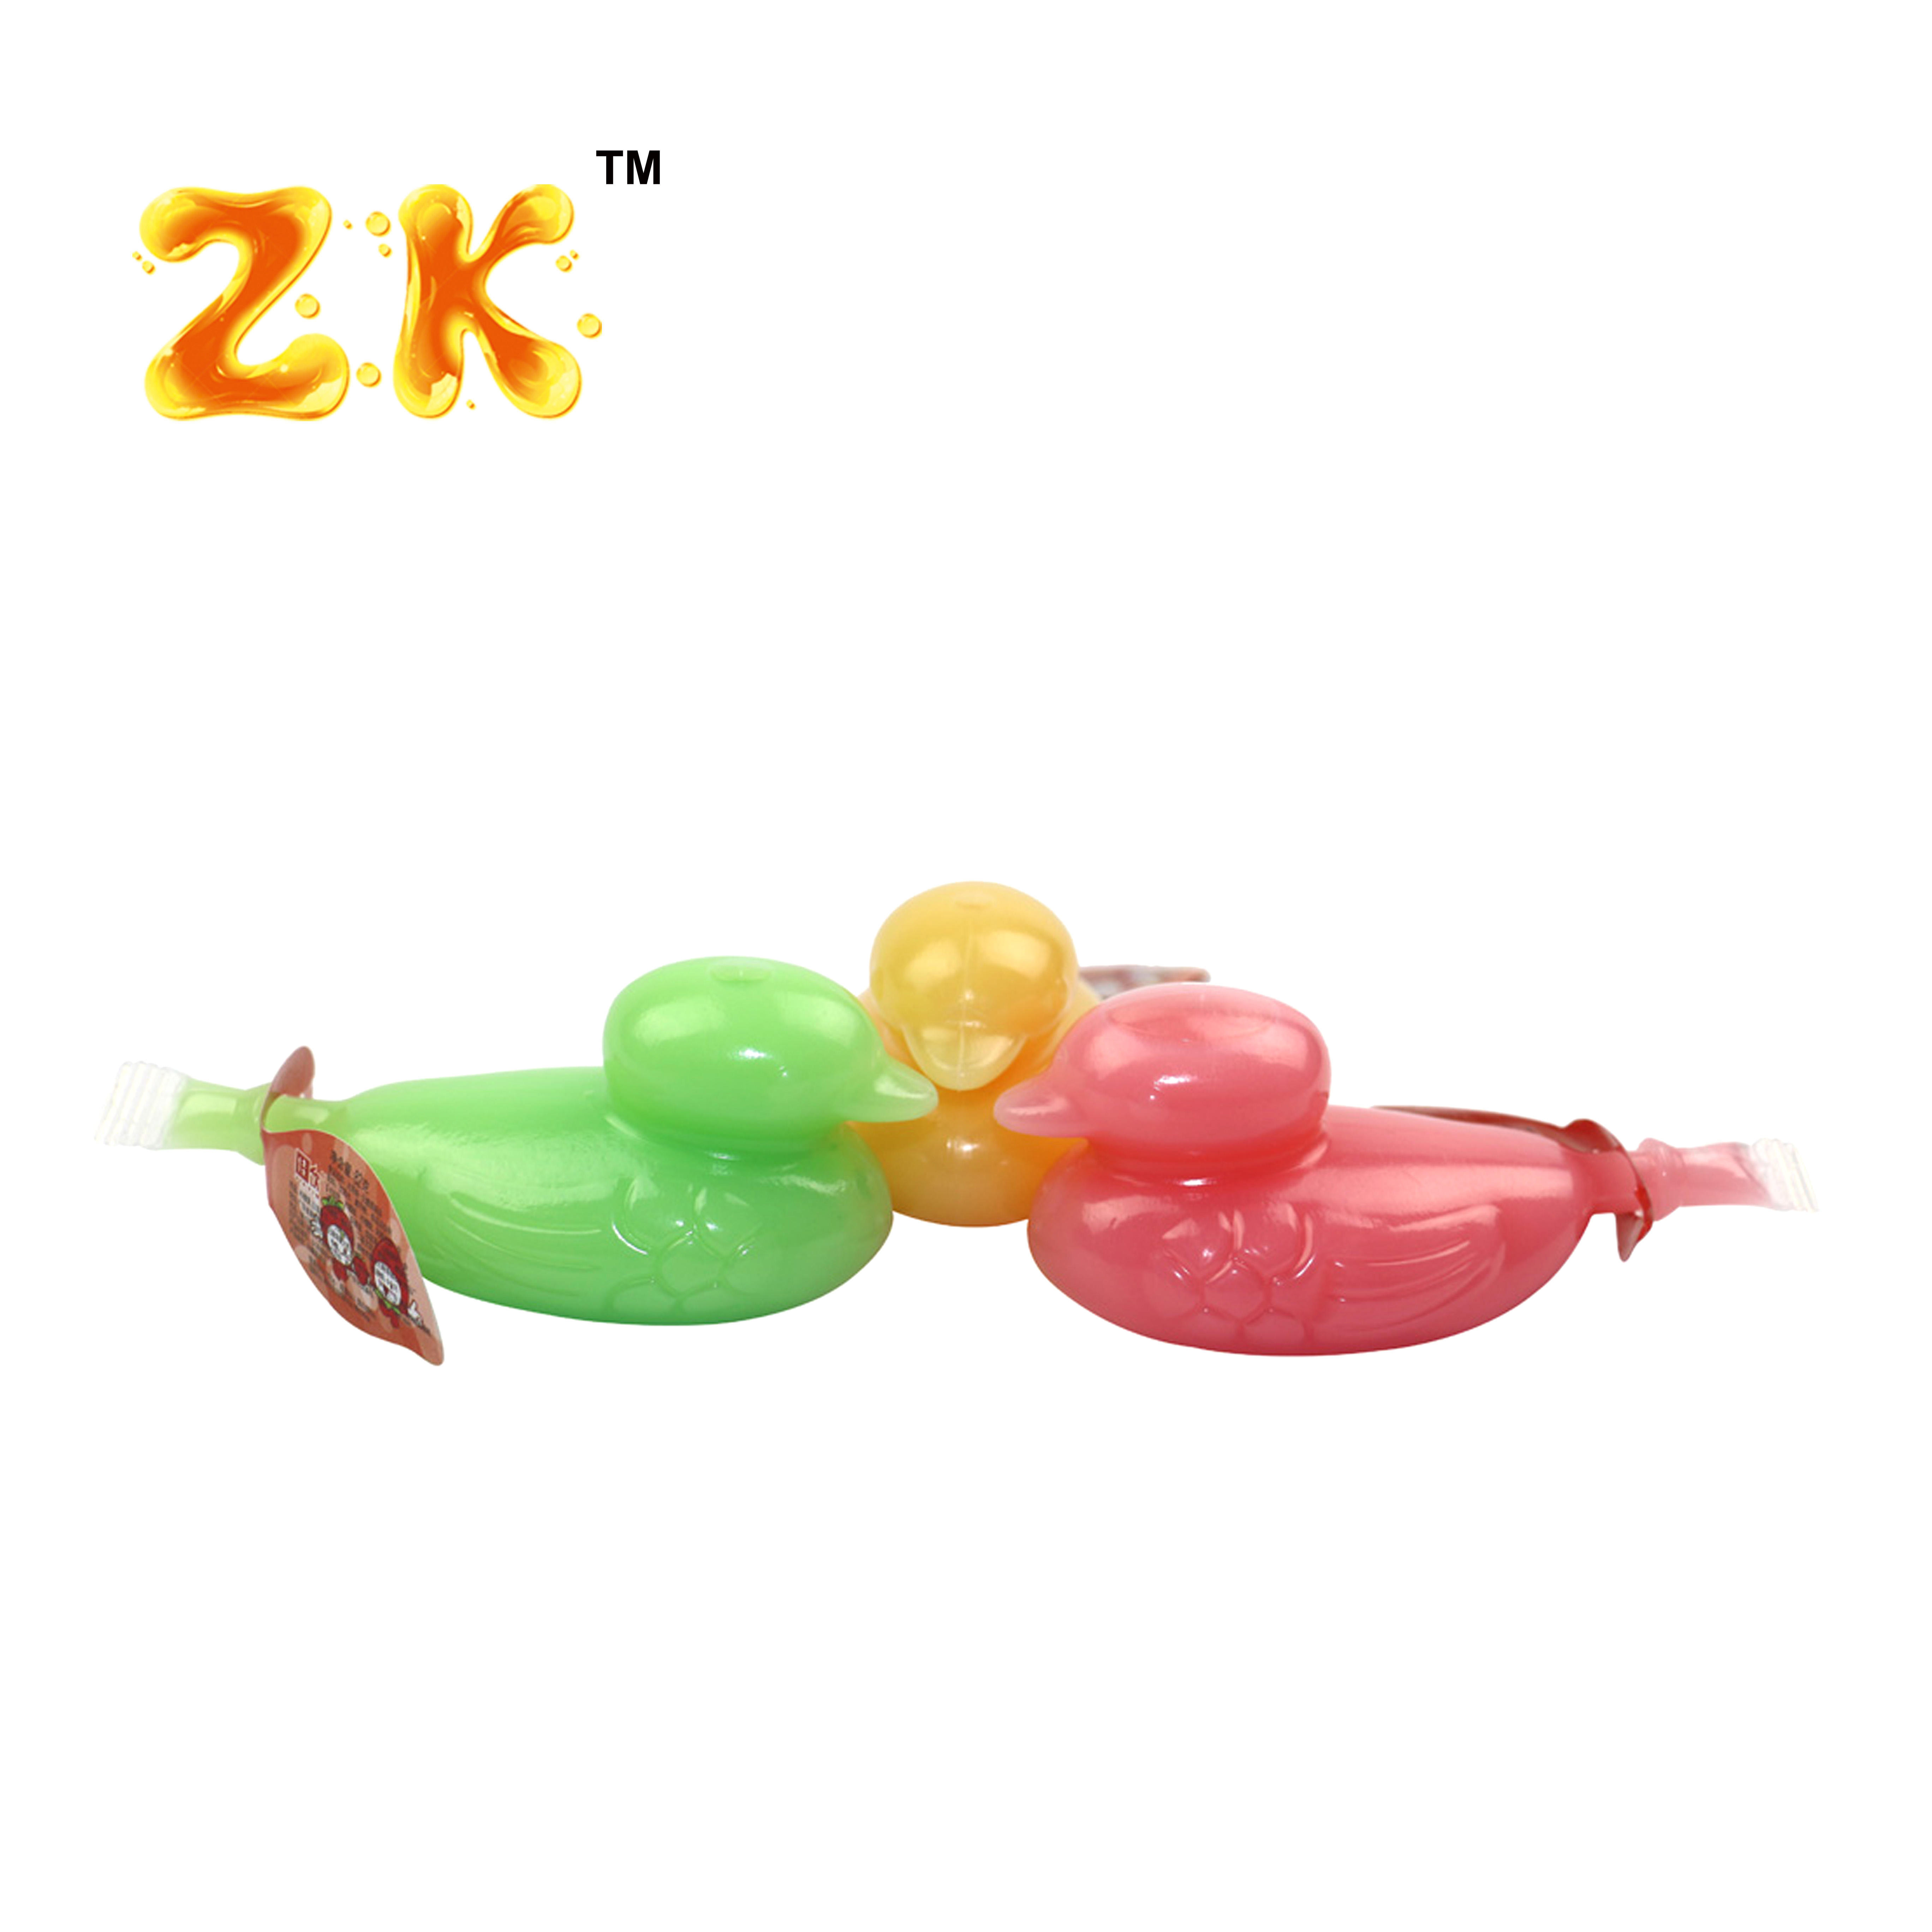 Hot selling 85g rubber duck shape jelly